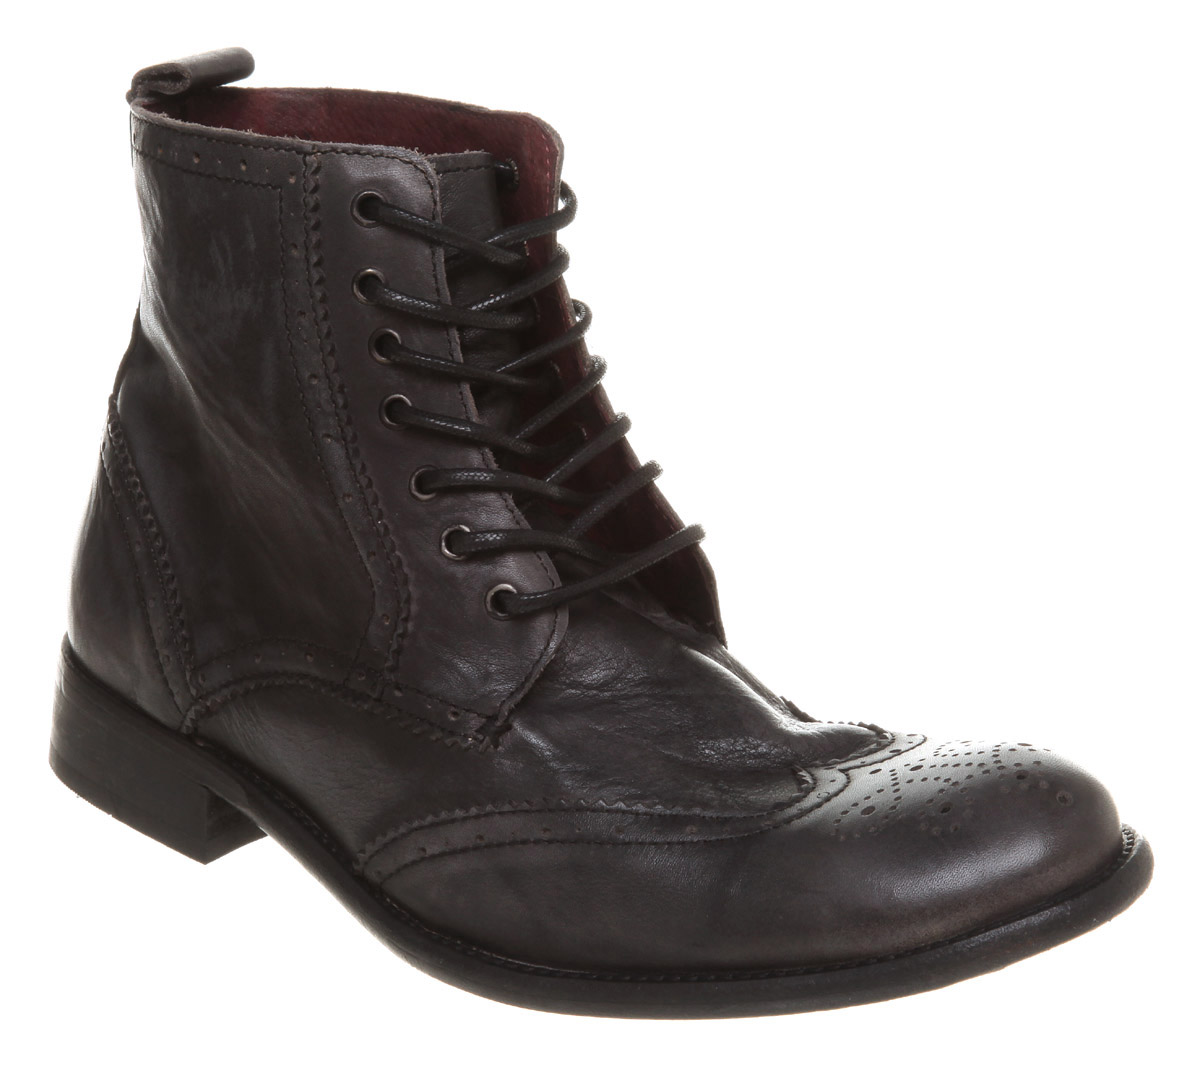 mens poste fury brogue lace boot black leather boots ebay